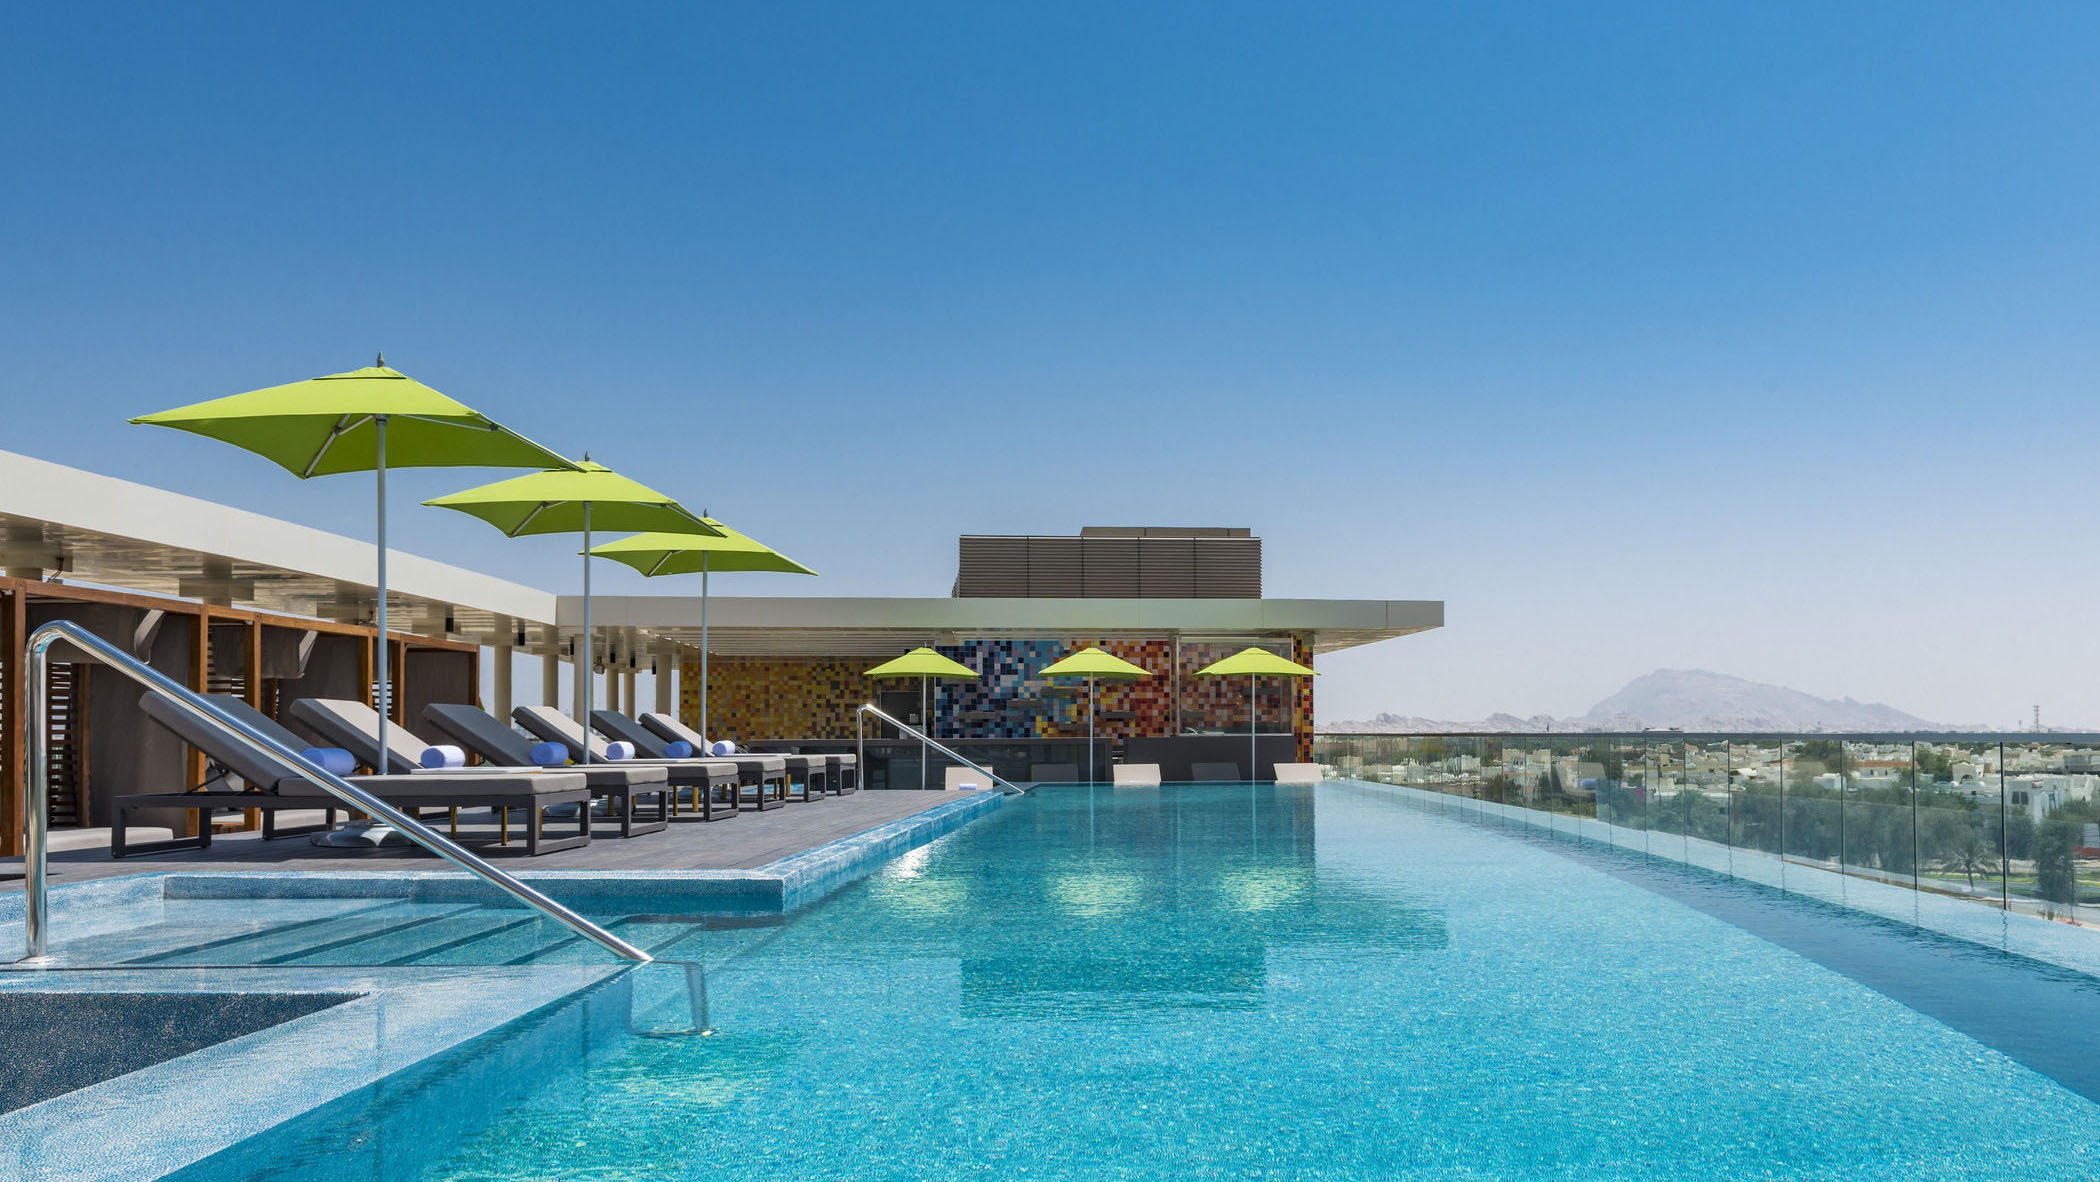 Aloft_Al_Ain_KKD_The Rooftop_Splash Pool_View_bigger.jpg